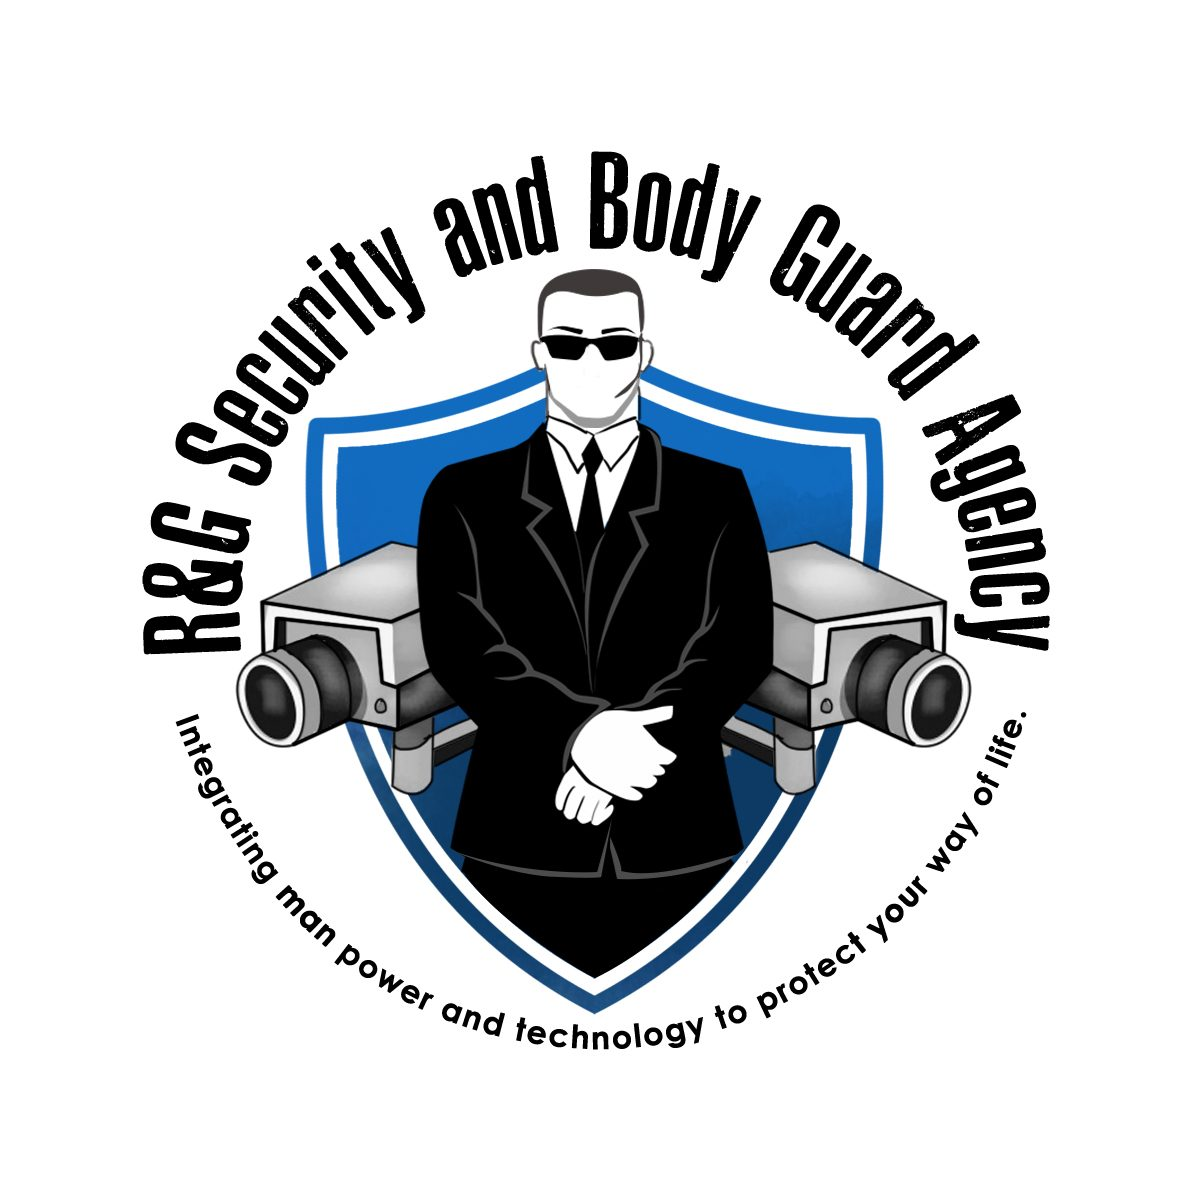 R&G Security and Body Guard Agency